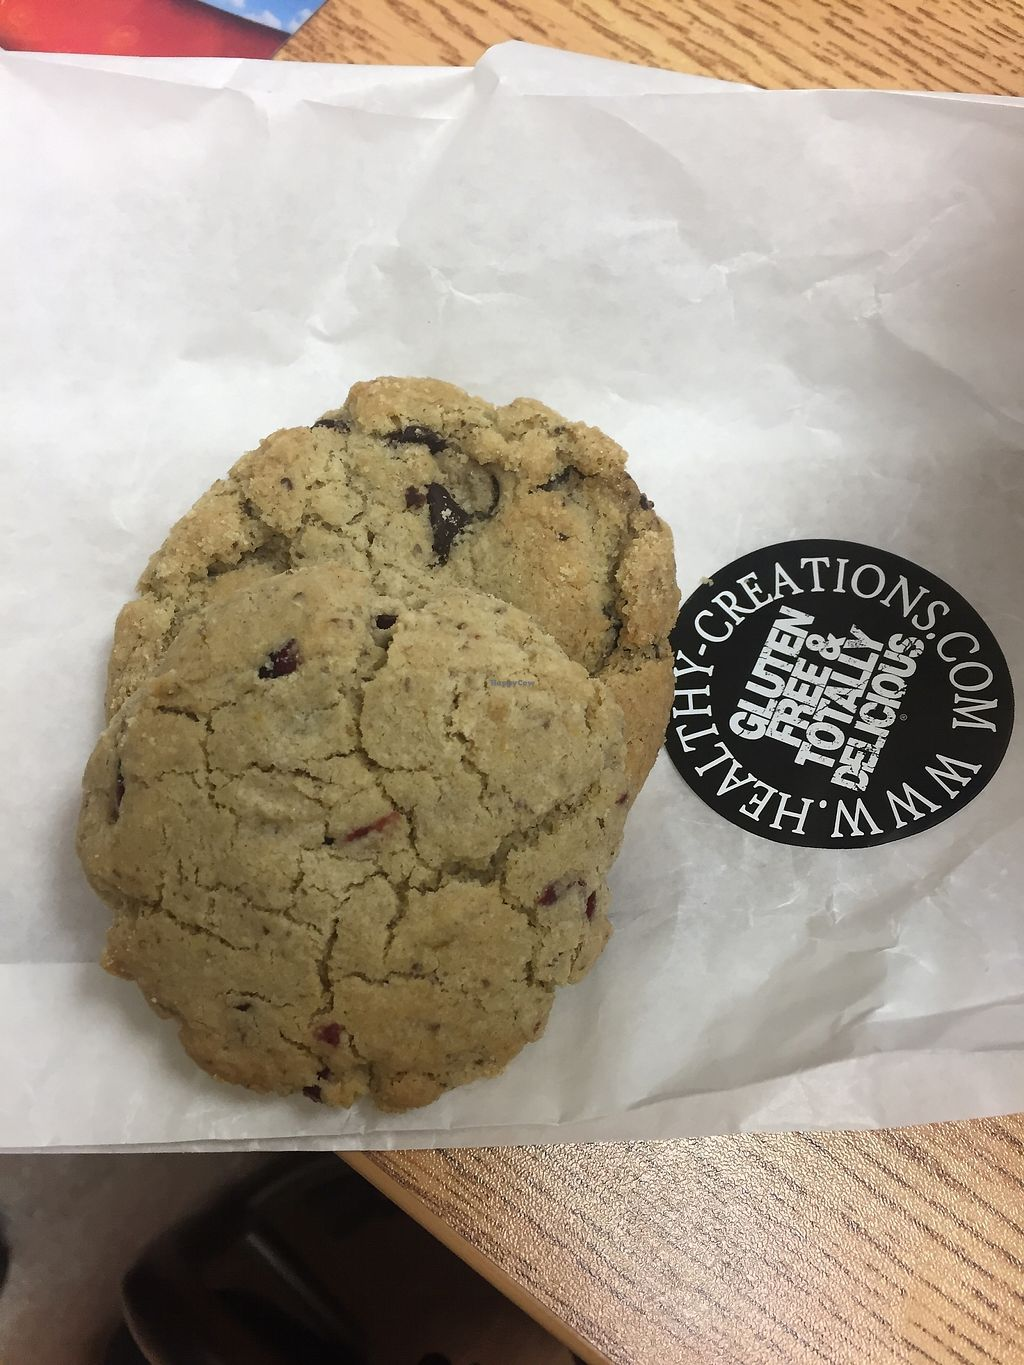 """Photo of Healthy Creations  by <a href=""""/members/profile/Danick"""">Danick</a> <br/>Bad picture. Cookies <br/> February 1, 2018  - <a href='/contact/abuse/image/110922/353774'>Report</a>"""